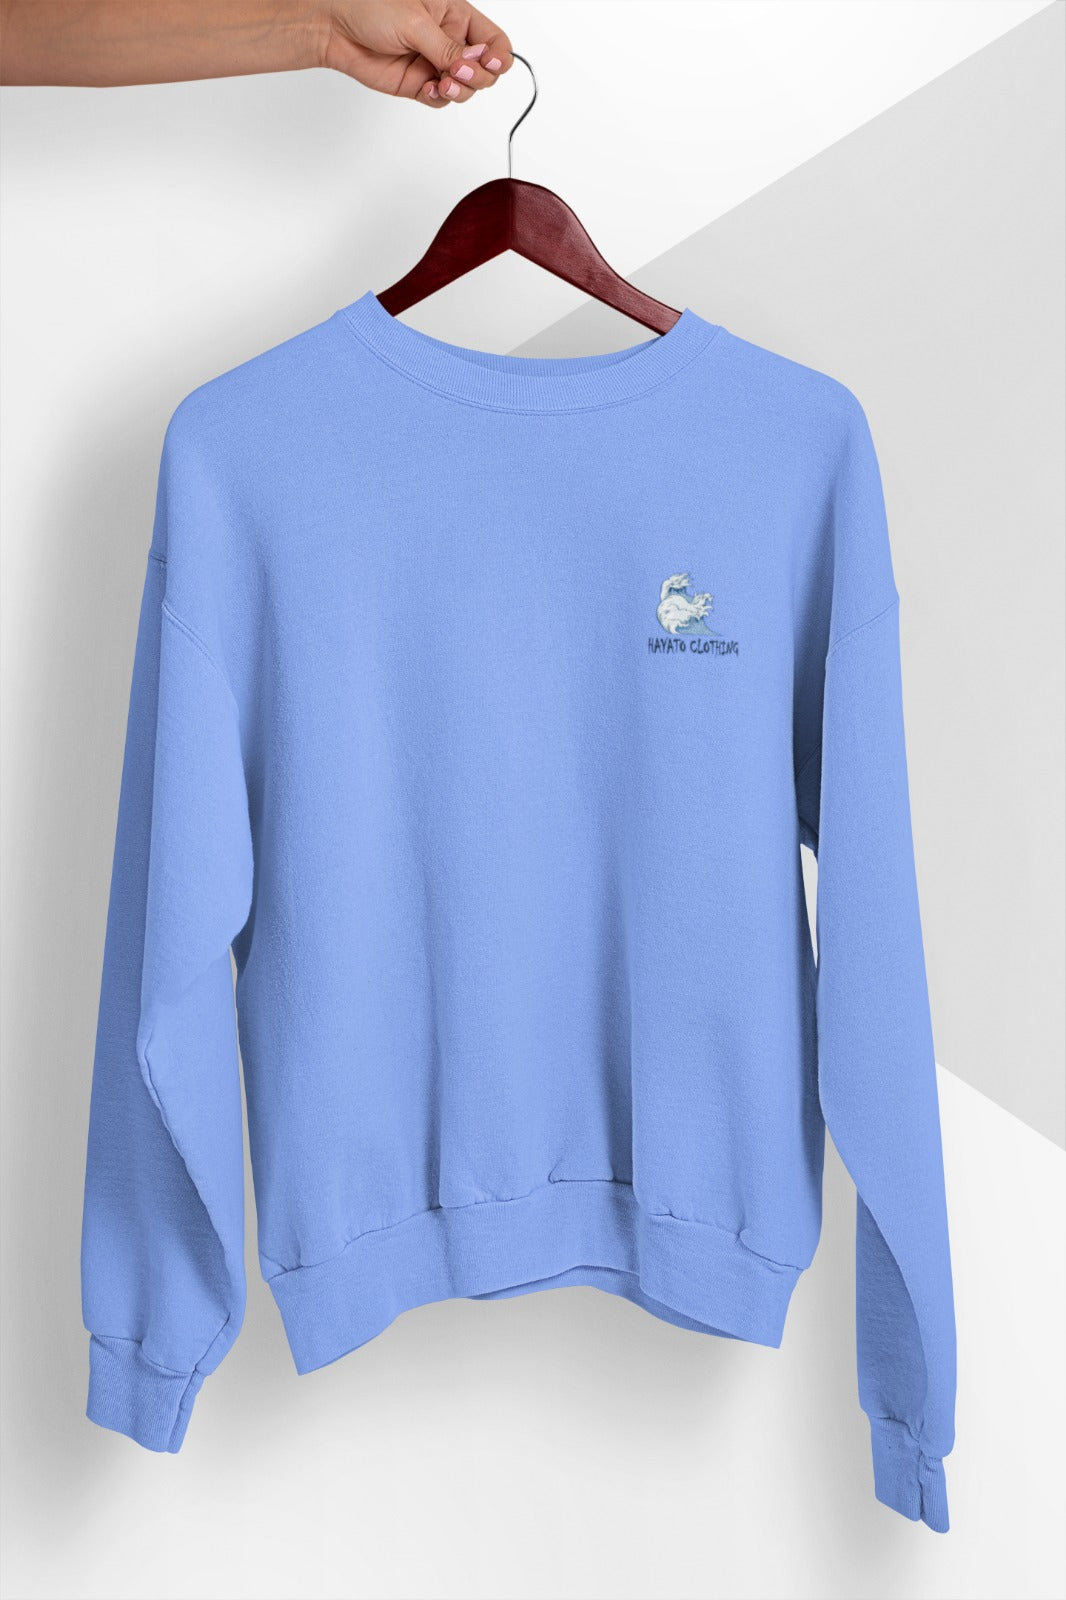 HAYATO - Cozy Wave Sky Blue Sweatshirt - HayatoClothing